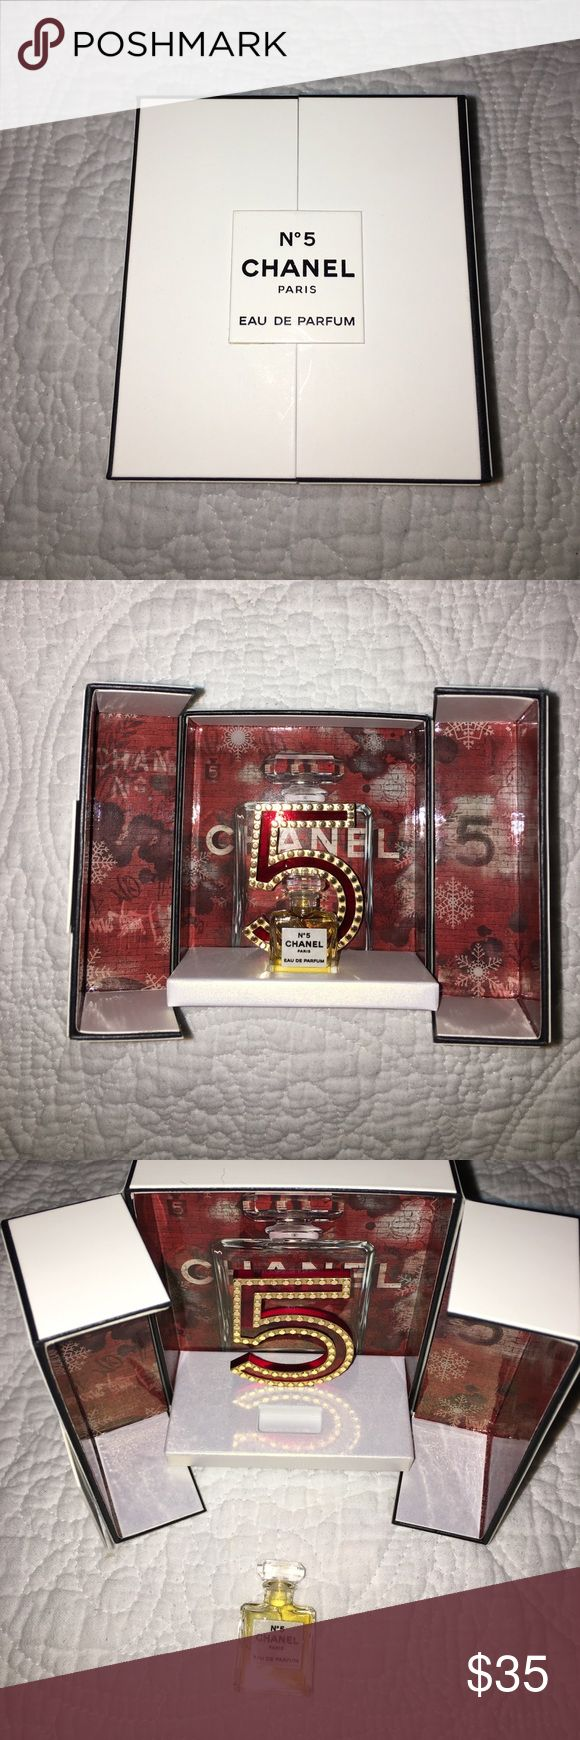 Chanel No 5 EDP 0.05 Fluid Ounces Limited Edition Authentic Chanel No 5 Eau de Parfum. Never been opened nor used. Add this miniature to your luxury perfume collection! CHANEL Other